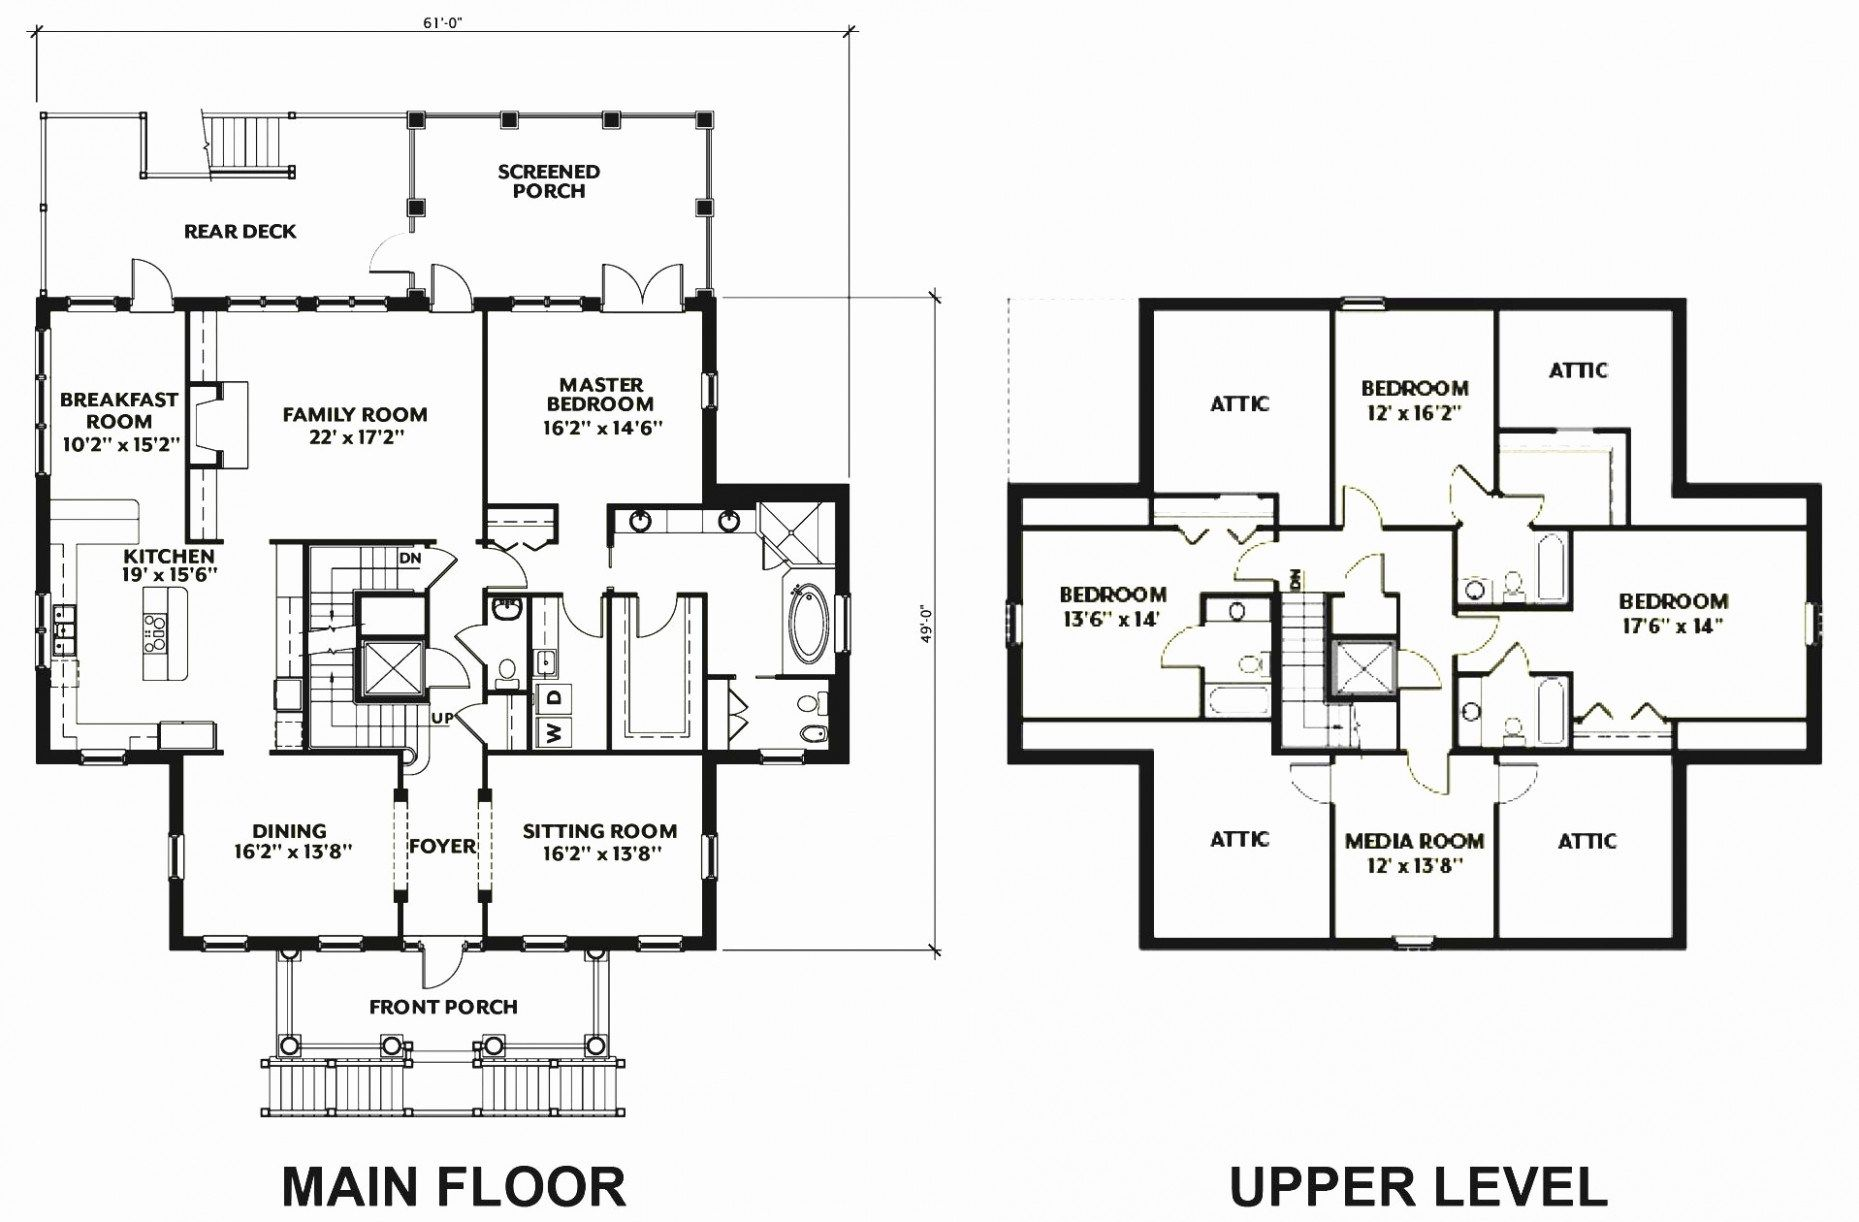 Architectural designer job description architecture flawless layout plan for small house idea with chic also pin by home devise on homedevise pinterest plans rh